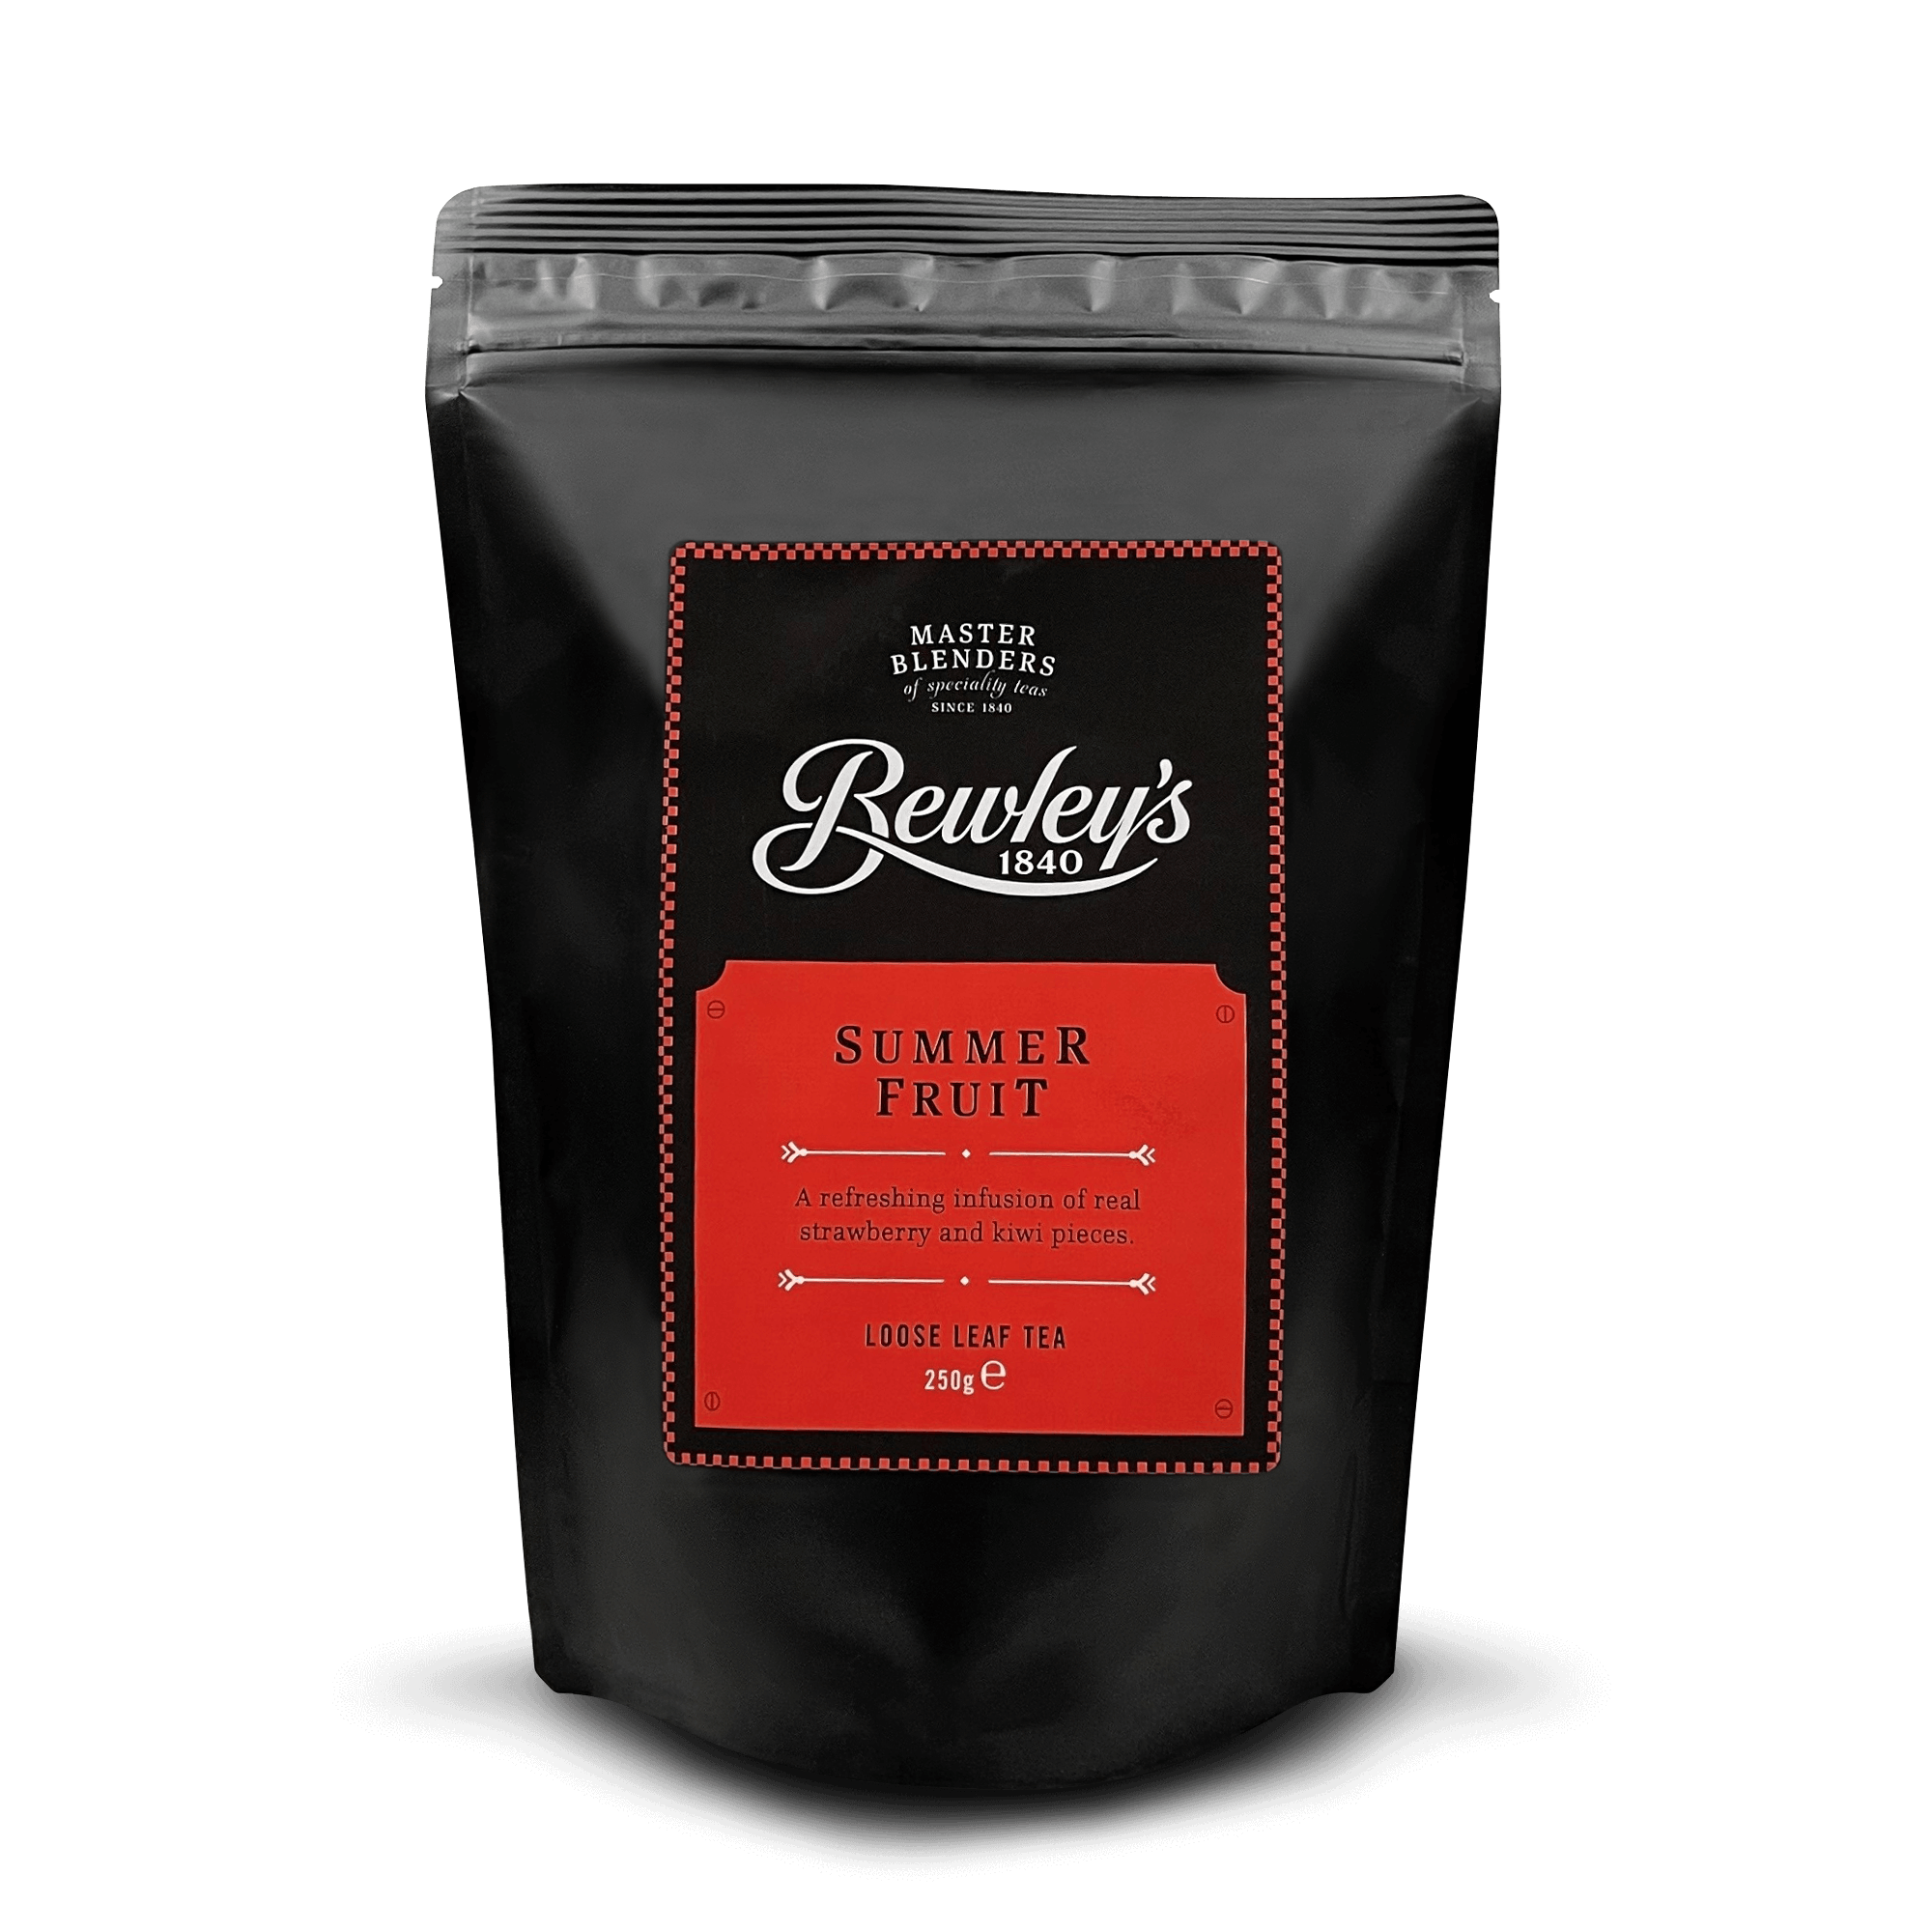 Bewley's Summer Fruit Loose Tea - Bewley's Tea & Coffee